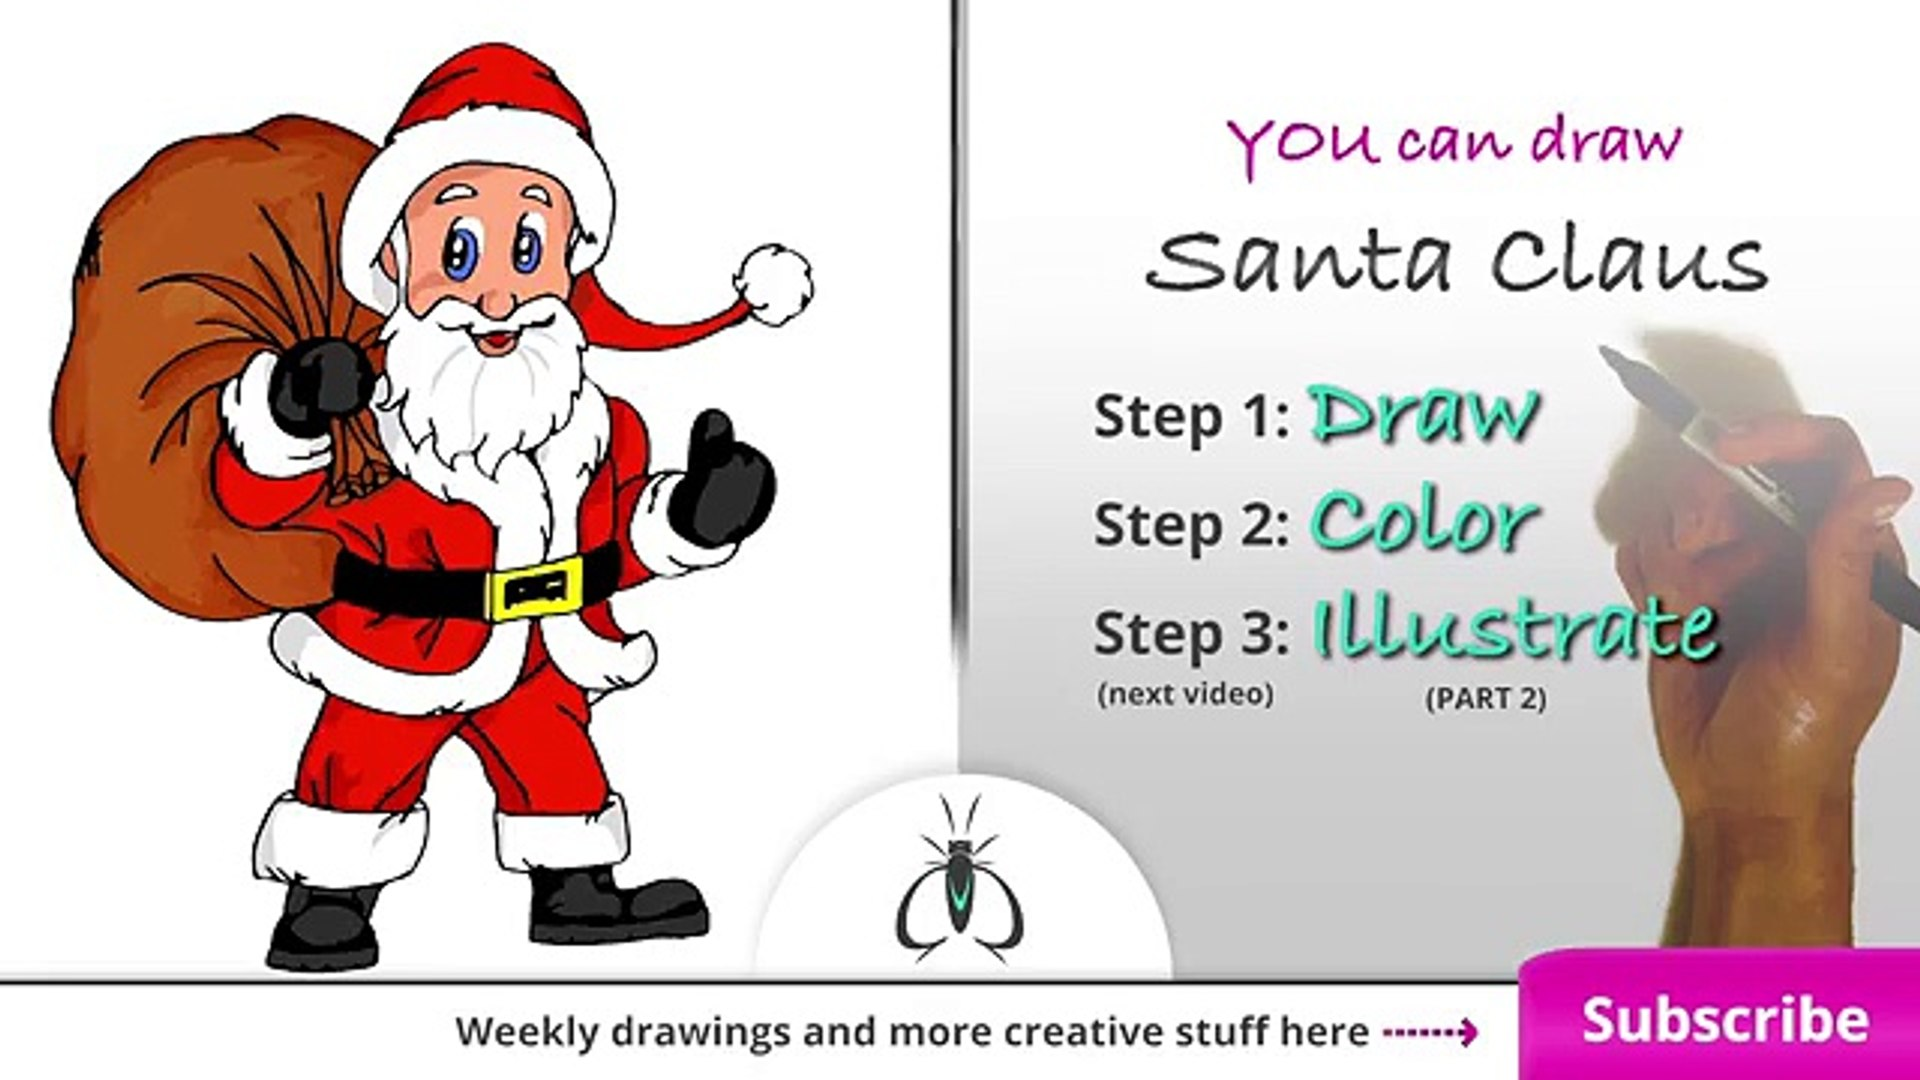 how to draw santa claus step by step easy art lesson video dailymotion how to draw santa claus step by step easy art lesson